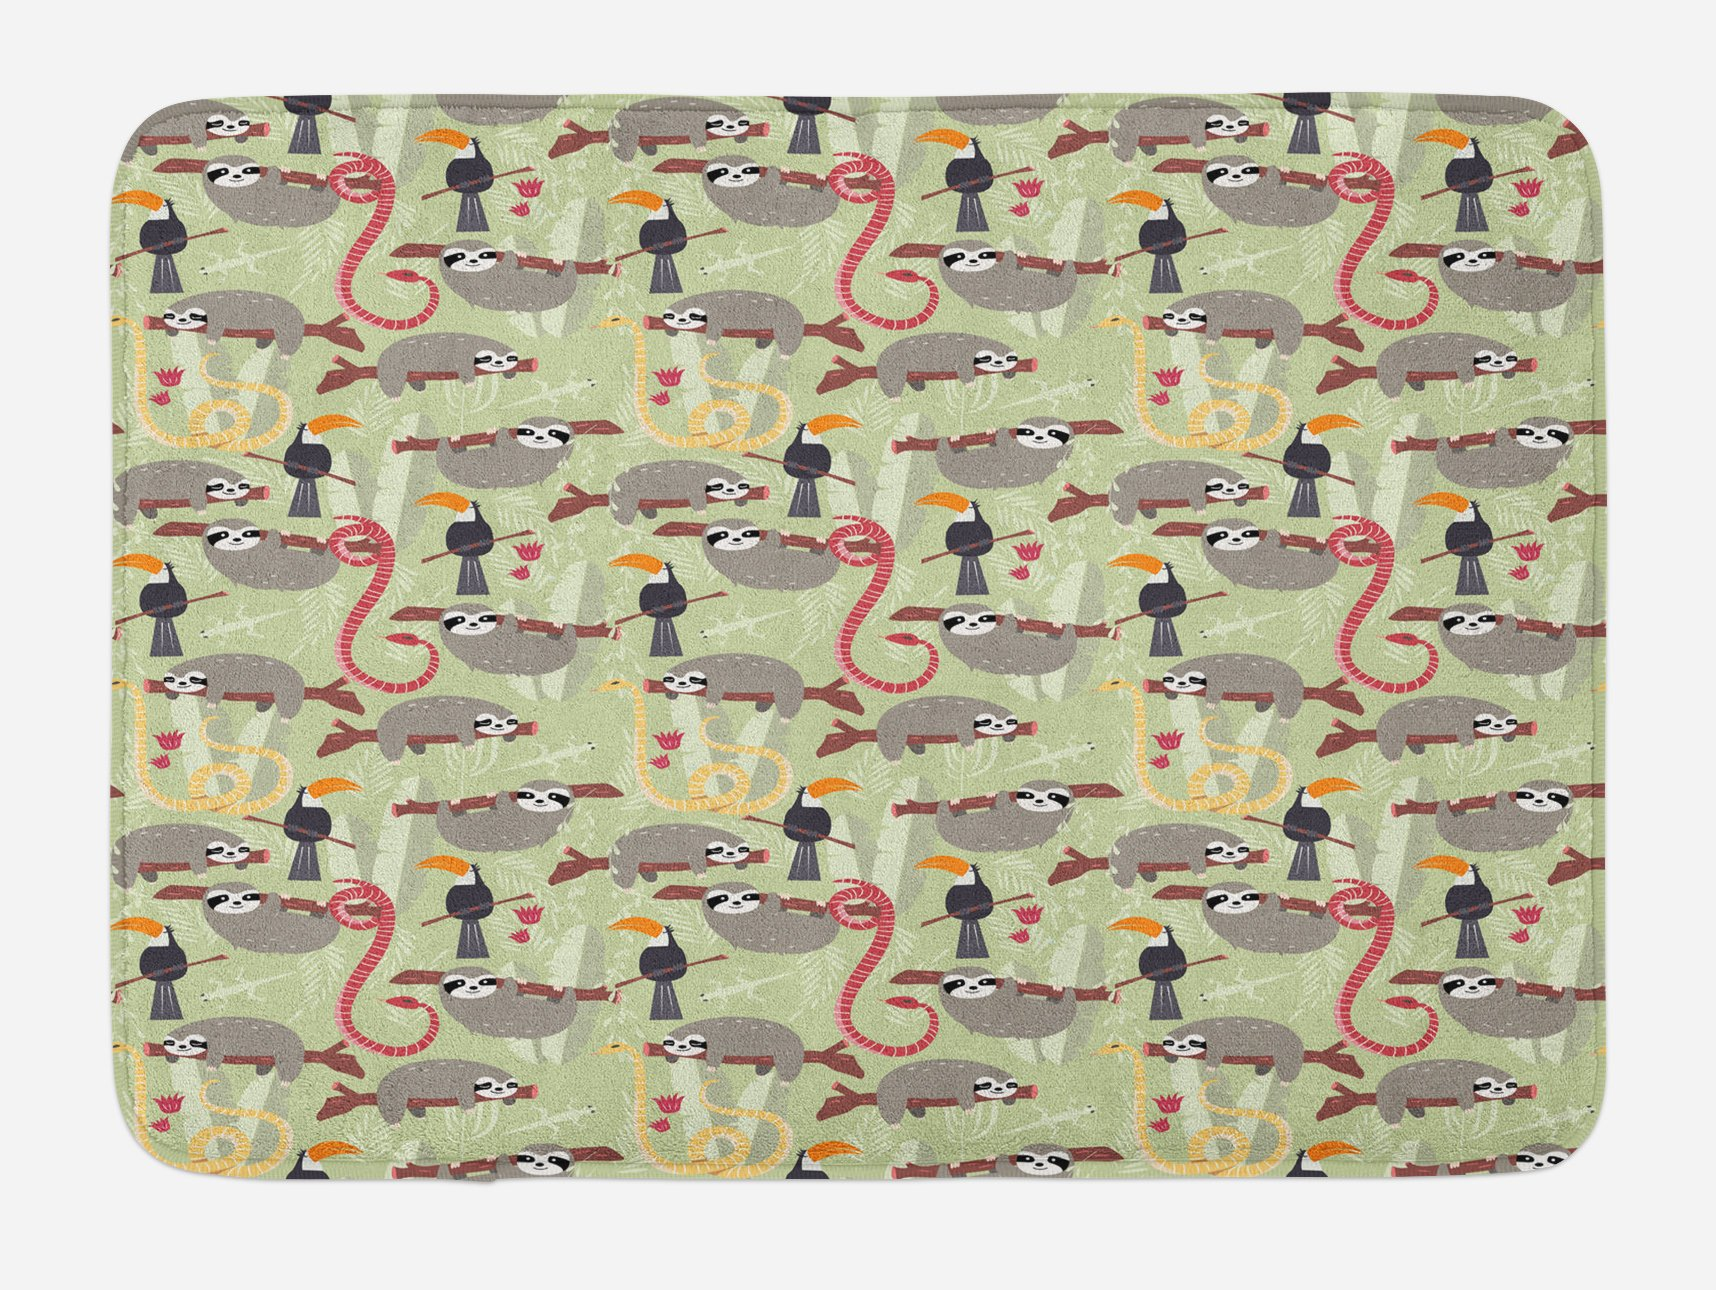 Lunarable Sloth Bath Mat, Amazon Rainforest Inhabitants Toucans Whipsnakes and Sloths Animals of South America, Plush Bathroom Decor Mat with Non Slip Backing, 29.5 W X 17.5 W Inches, Multicolor